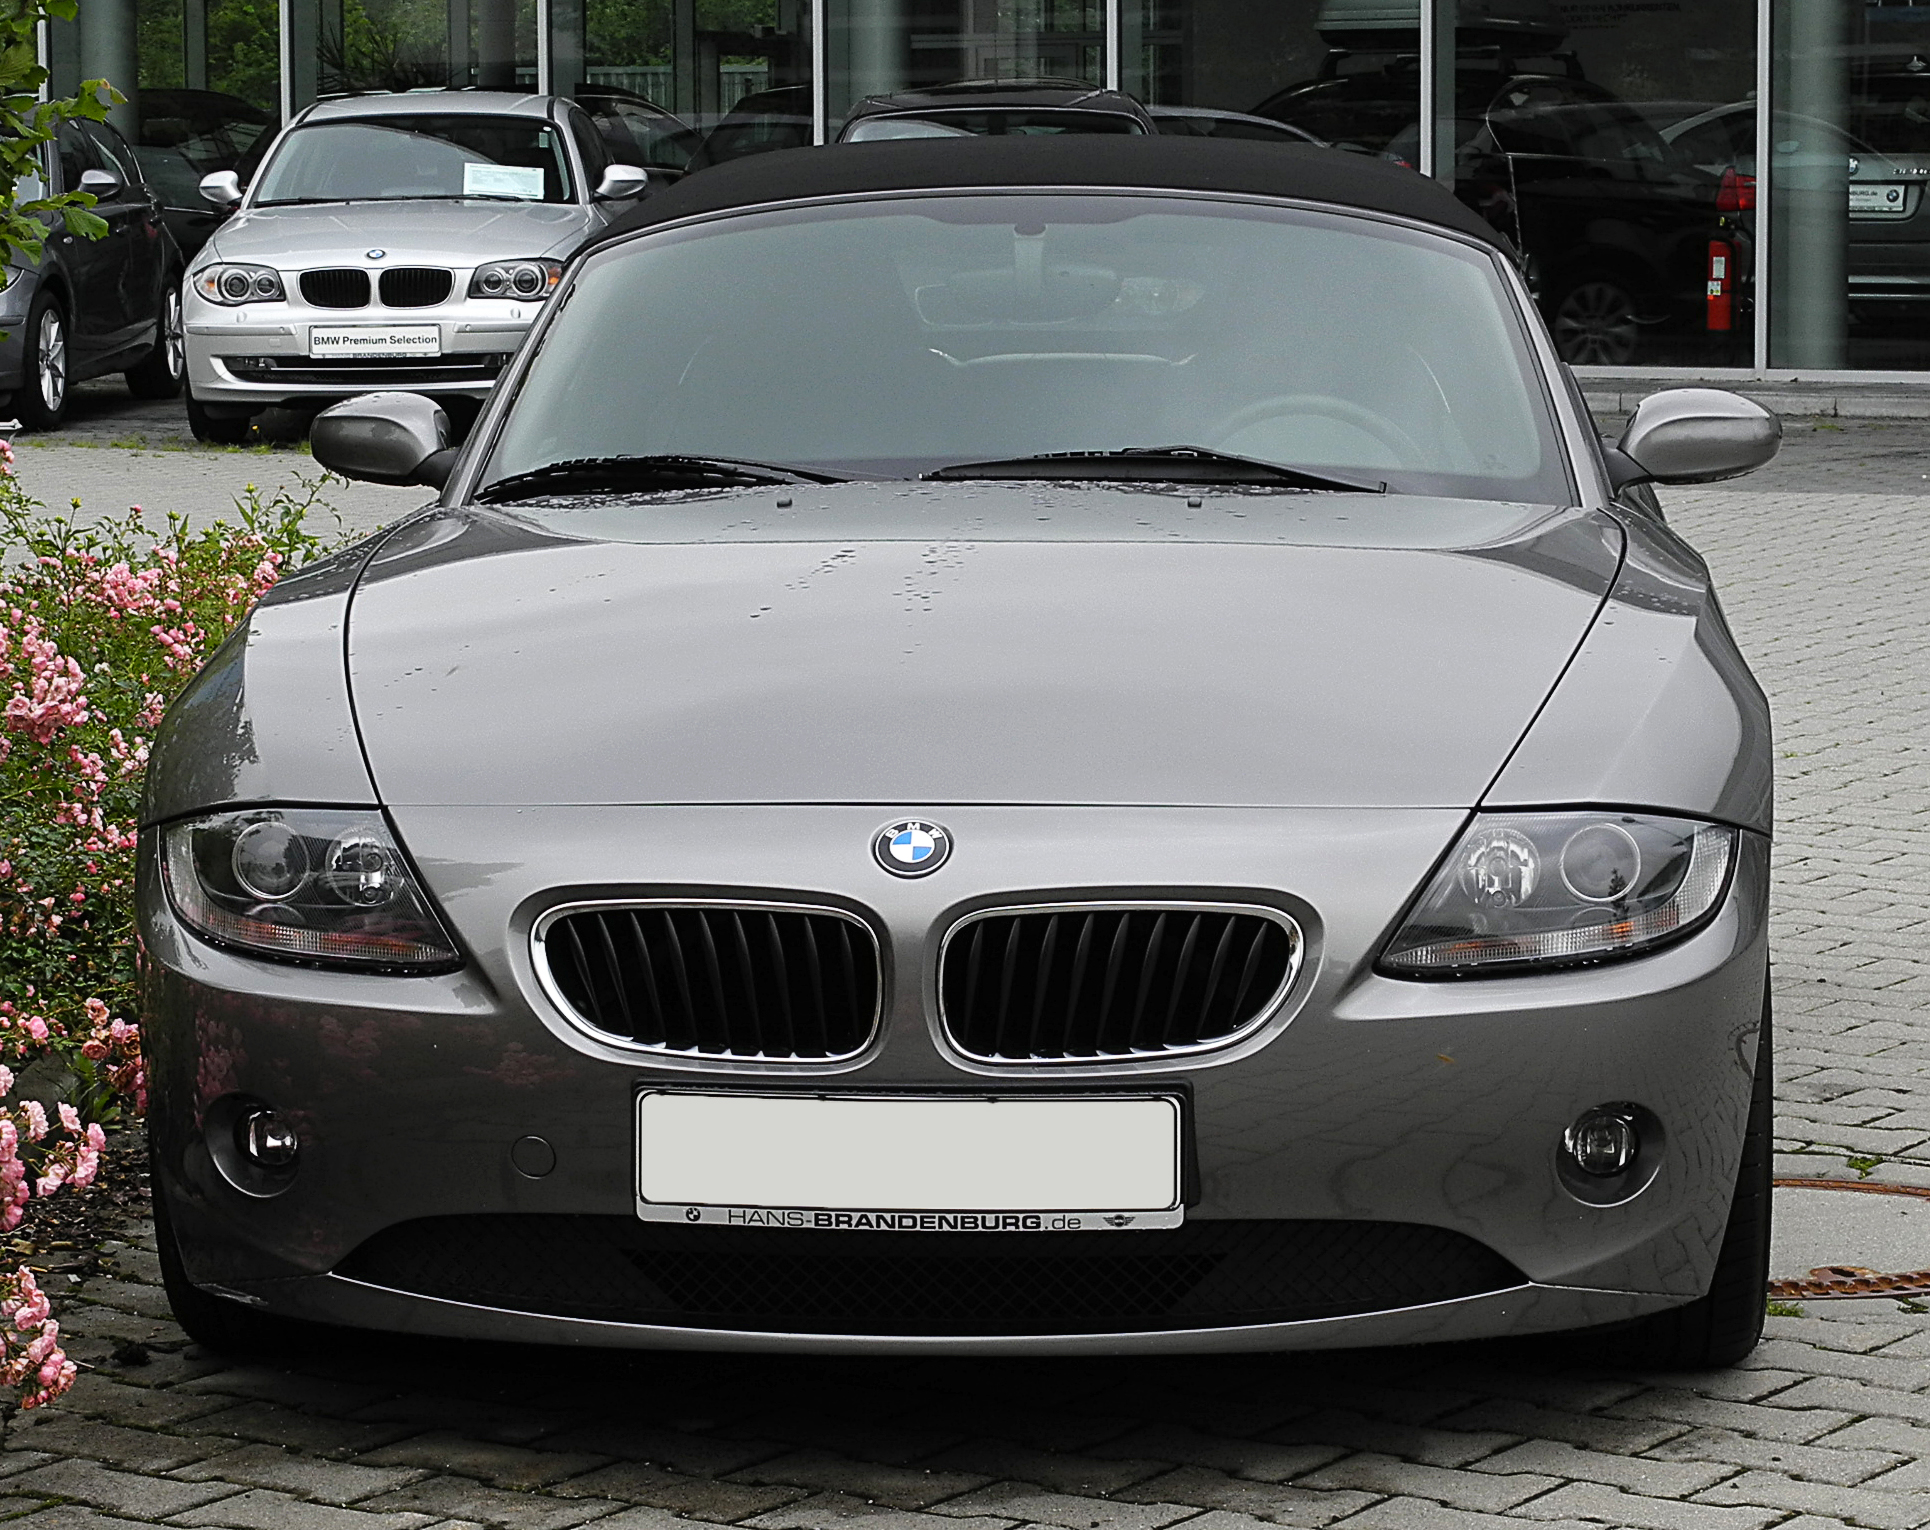 file bmw z4 e85 frontansicht 26 juni 2011 wikipedia. Black Bedroom Furniture Sets. Home Design Ideas